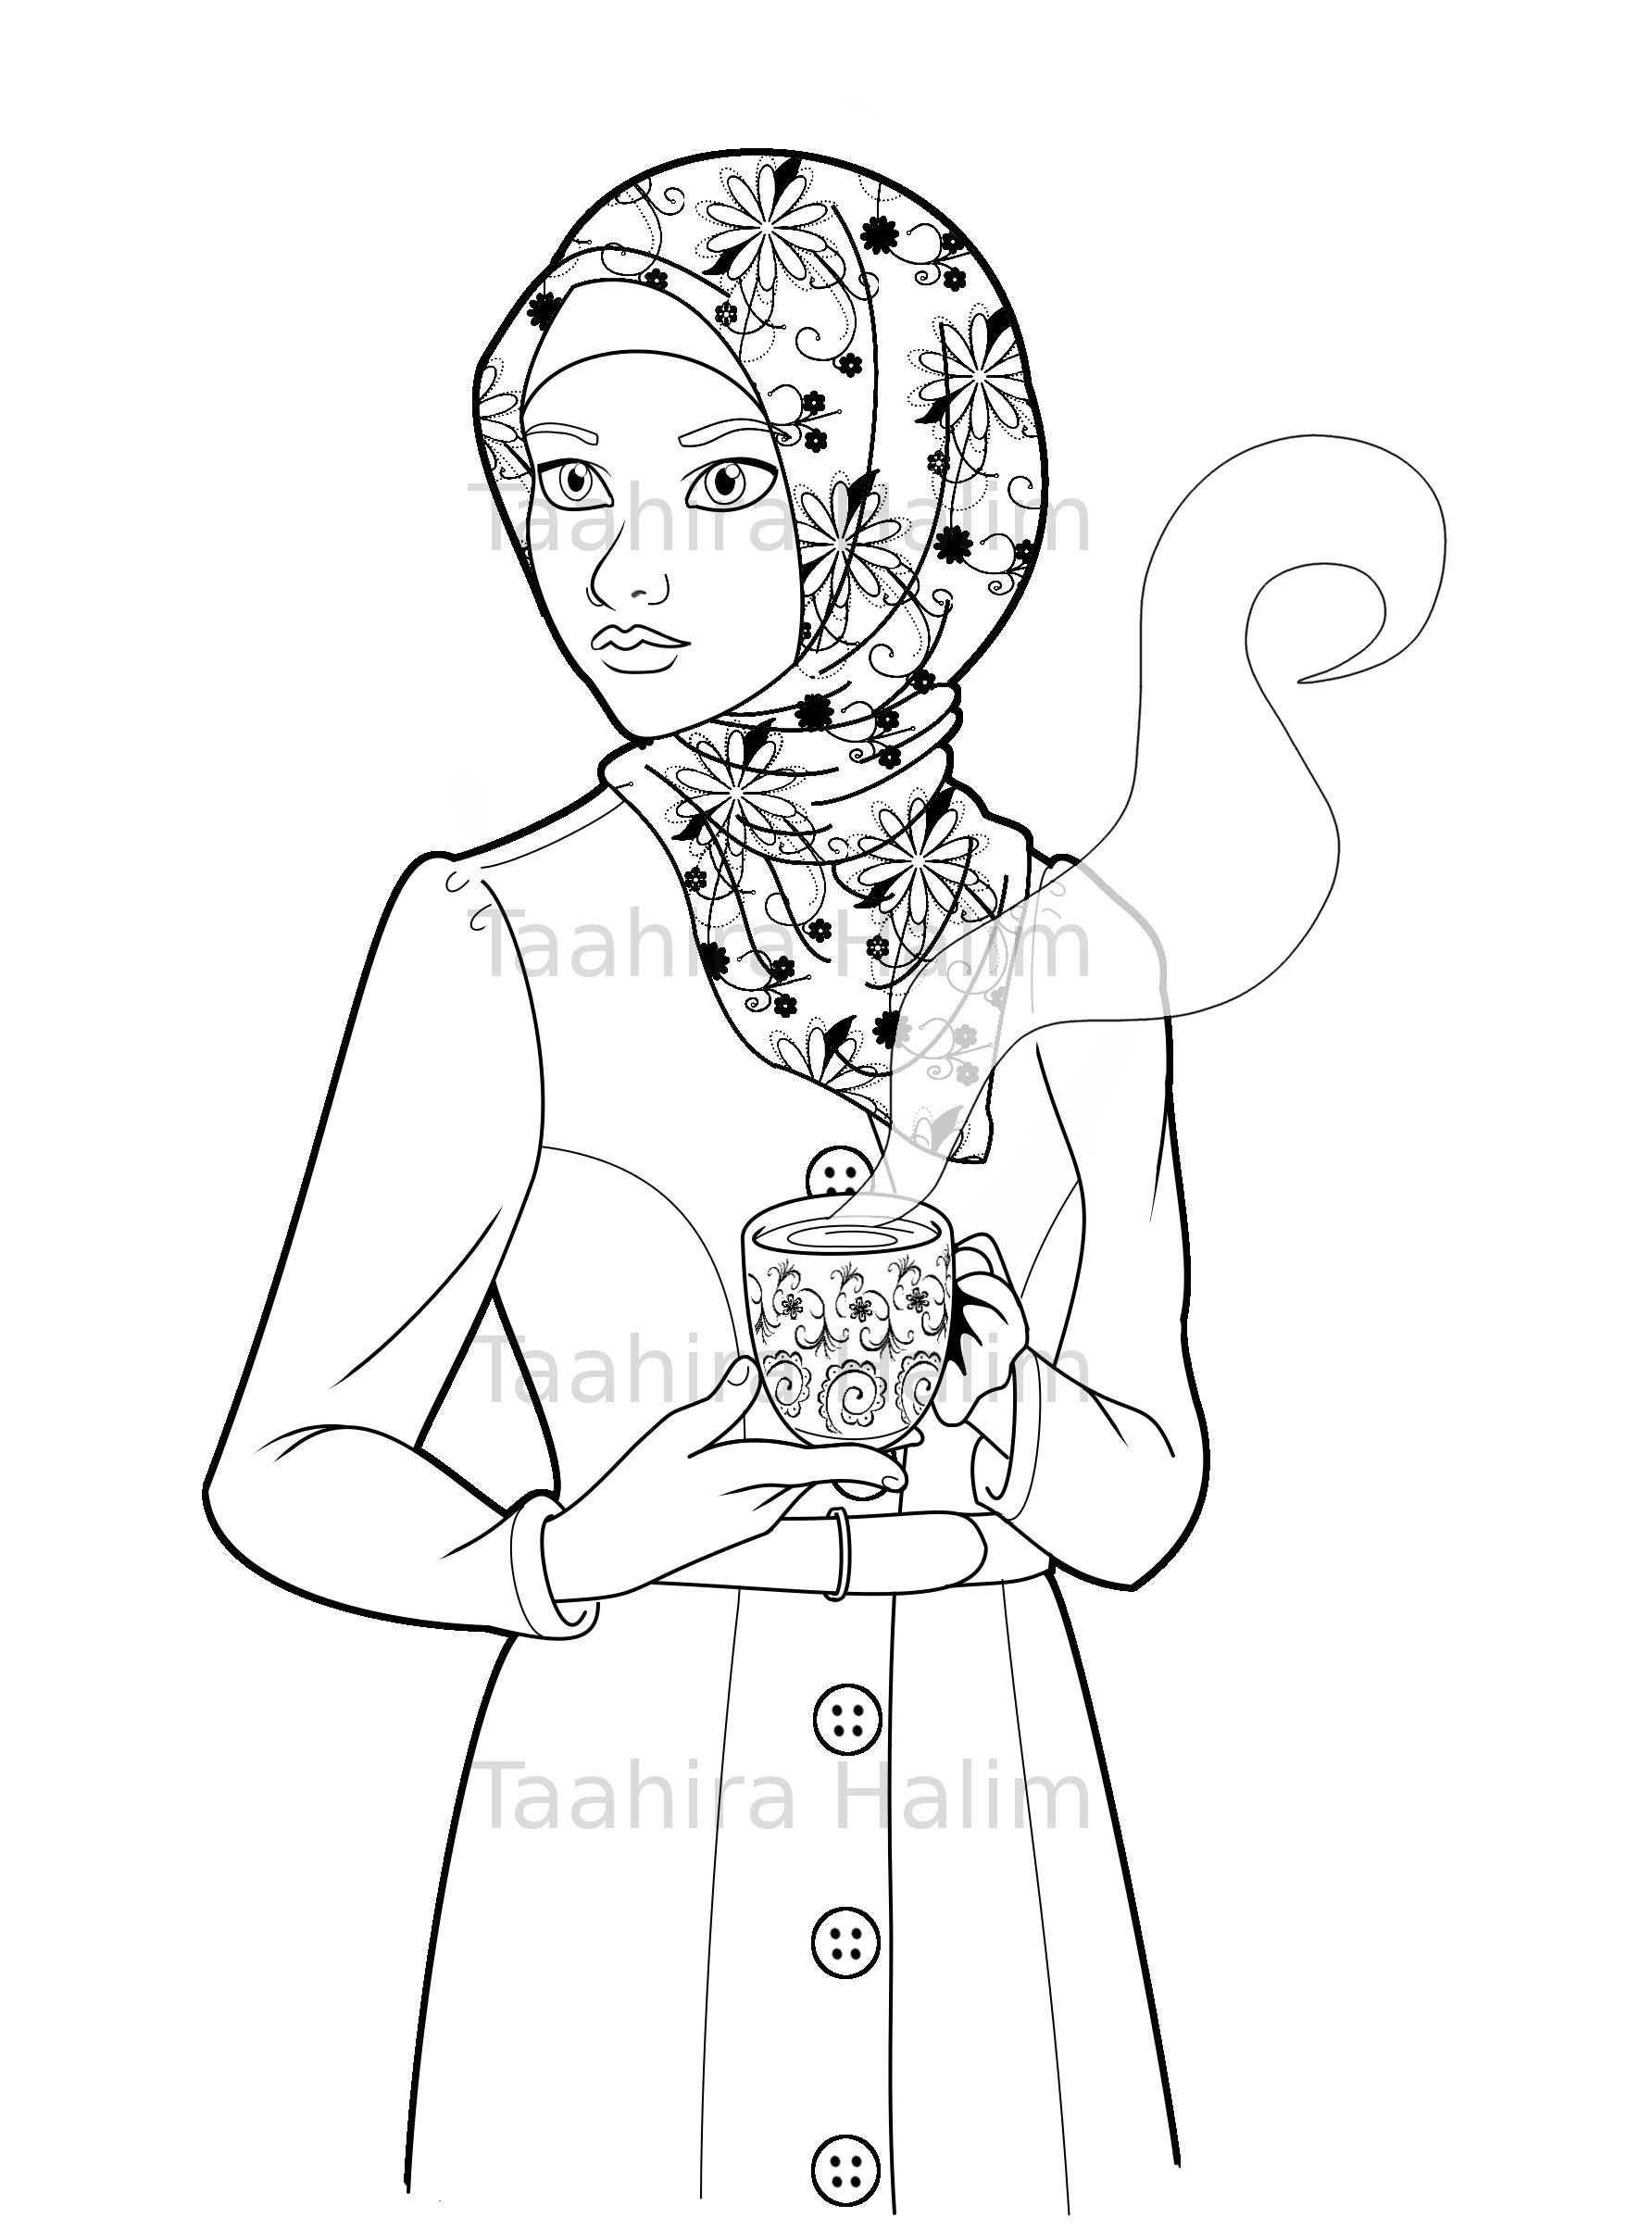 Fresh Coloring Pages Islamic Download